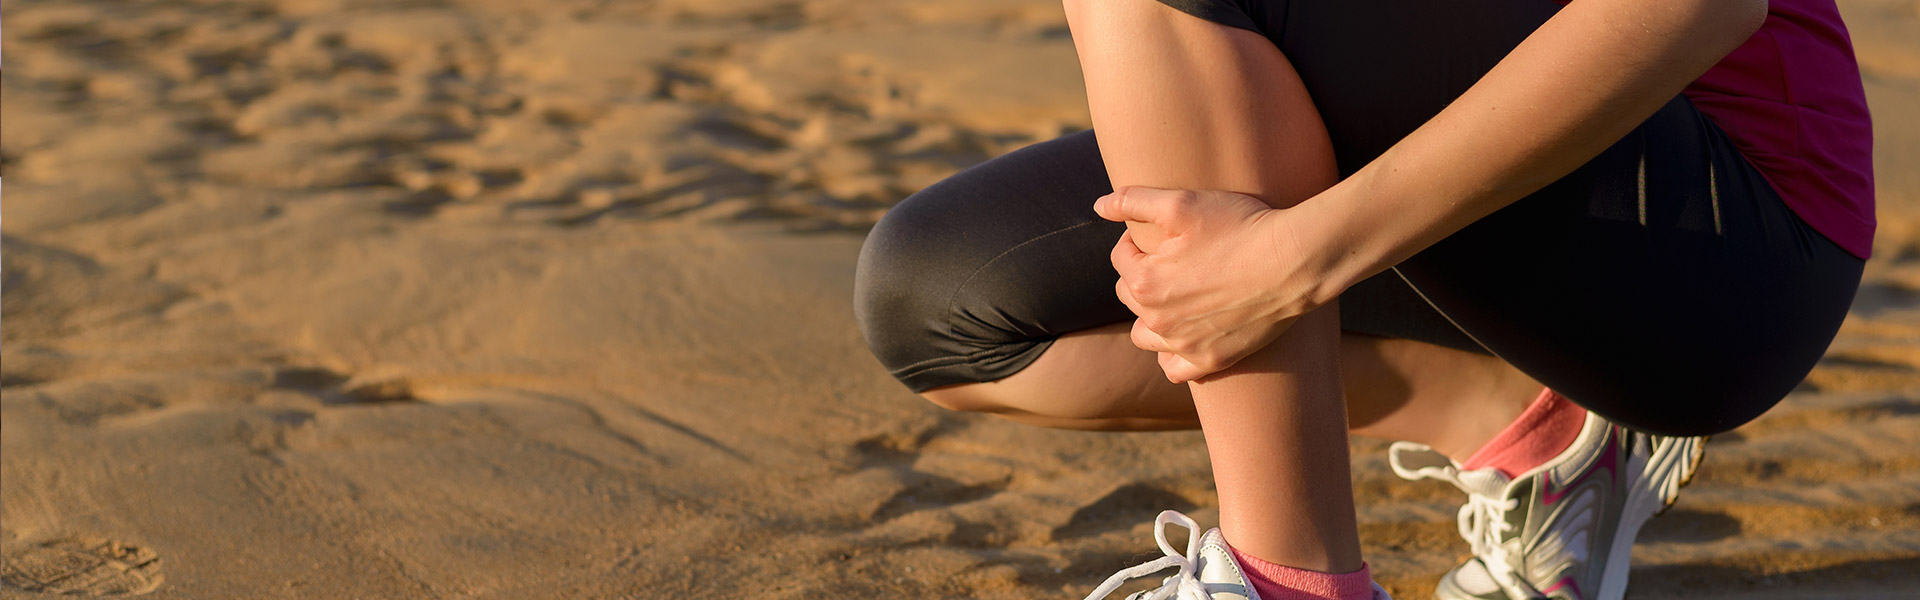 Shin Splints Treatment with Arch Supports in St. Catharines